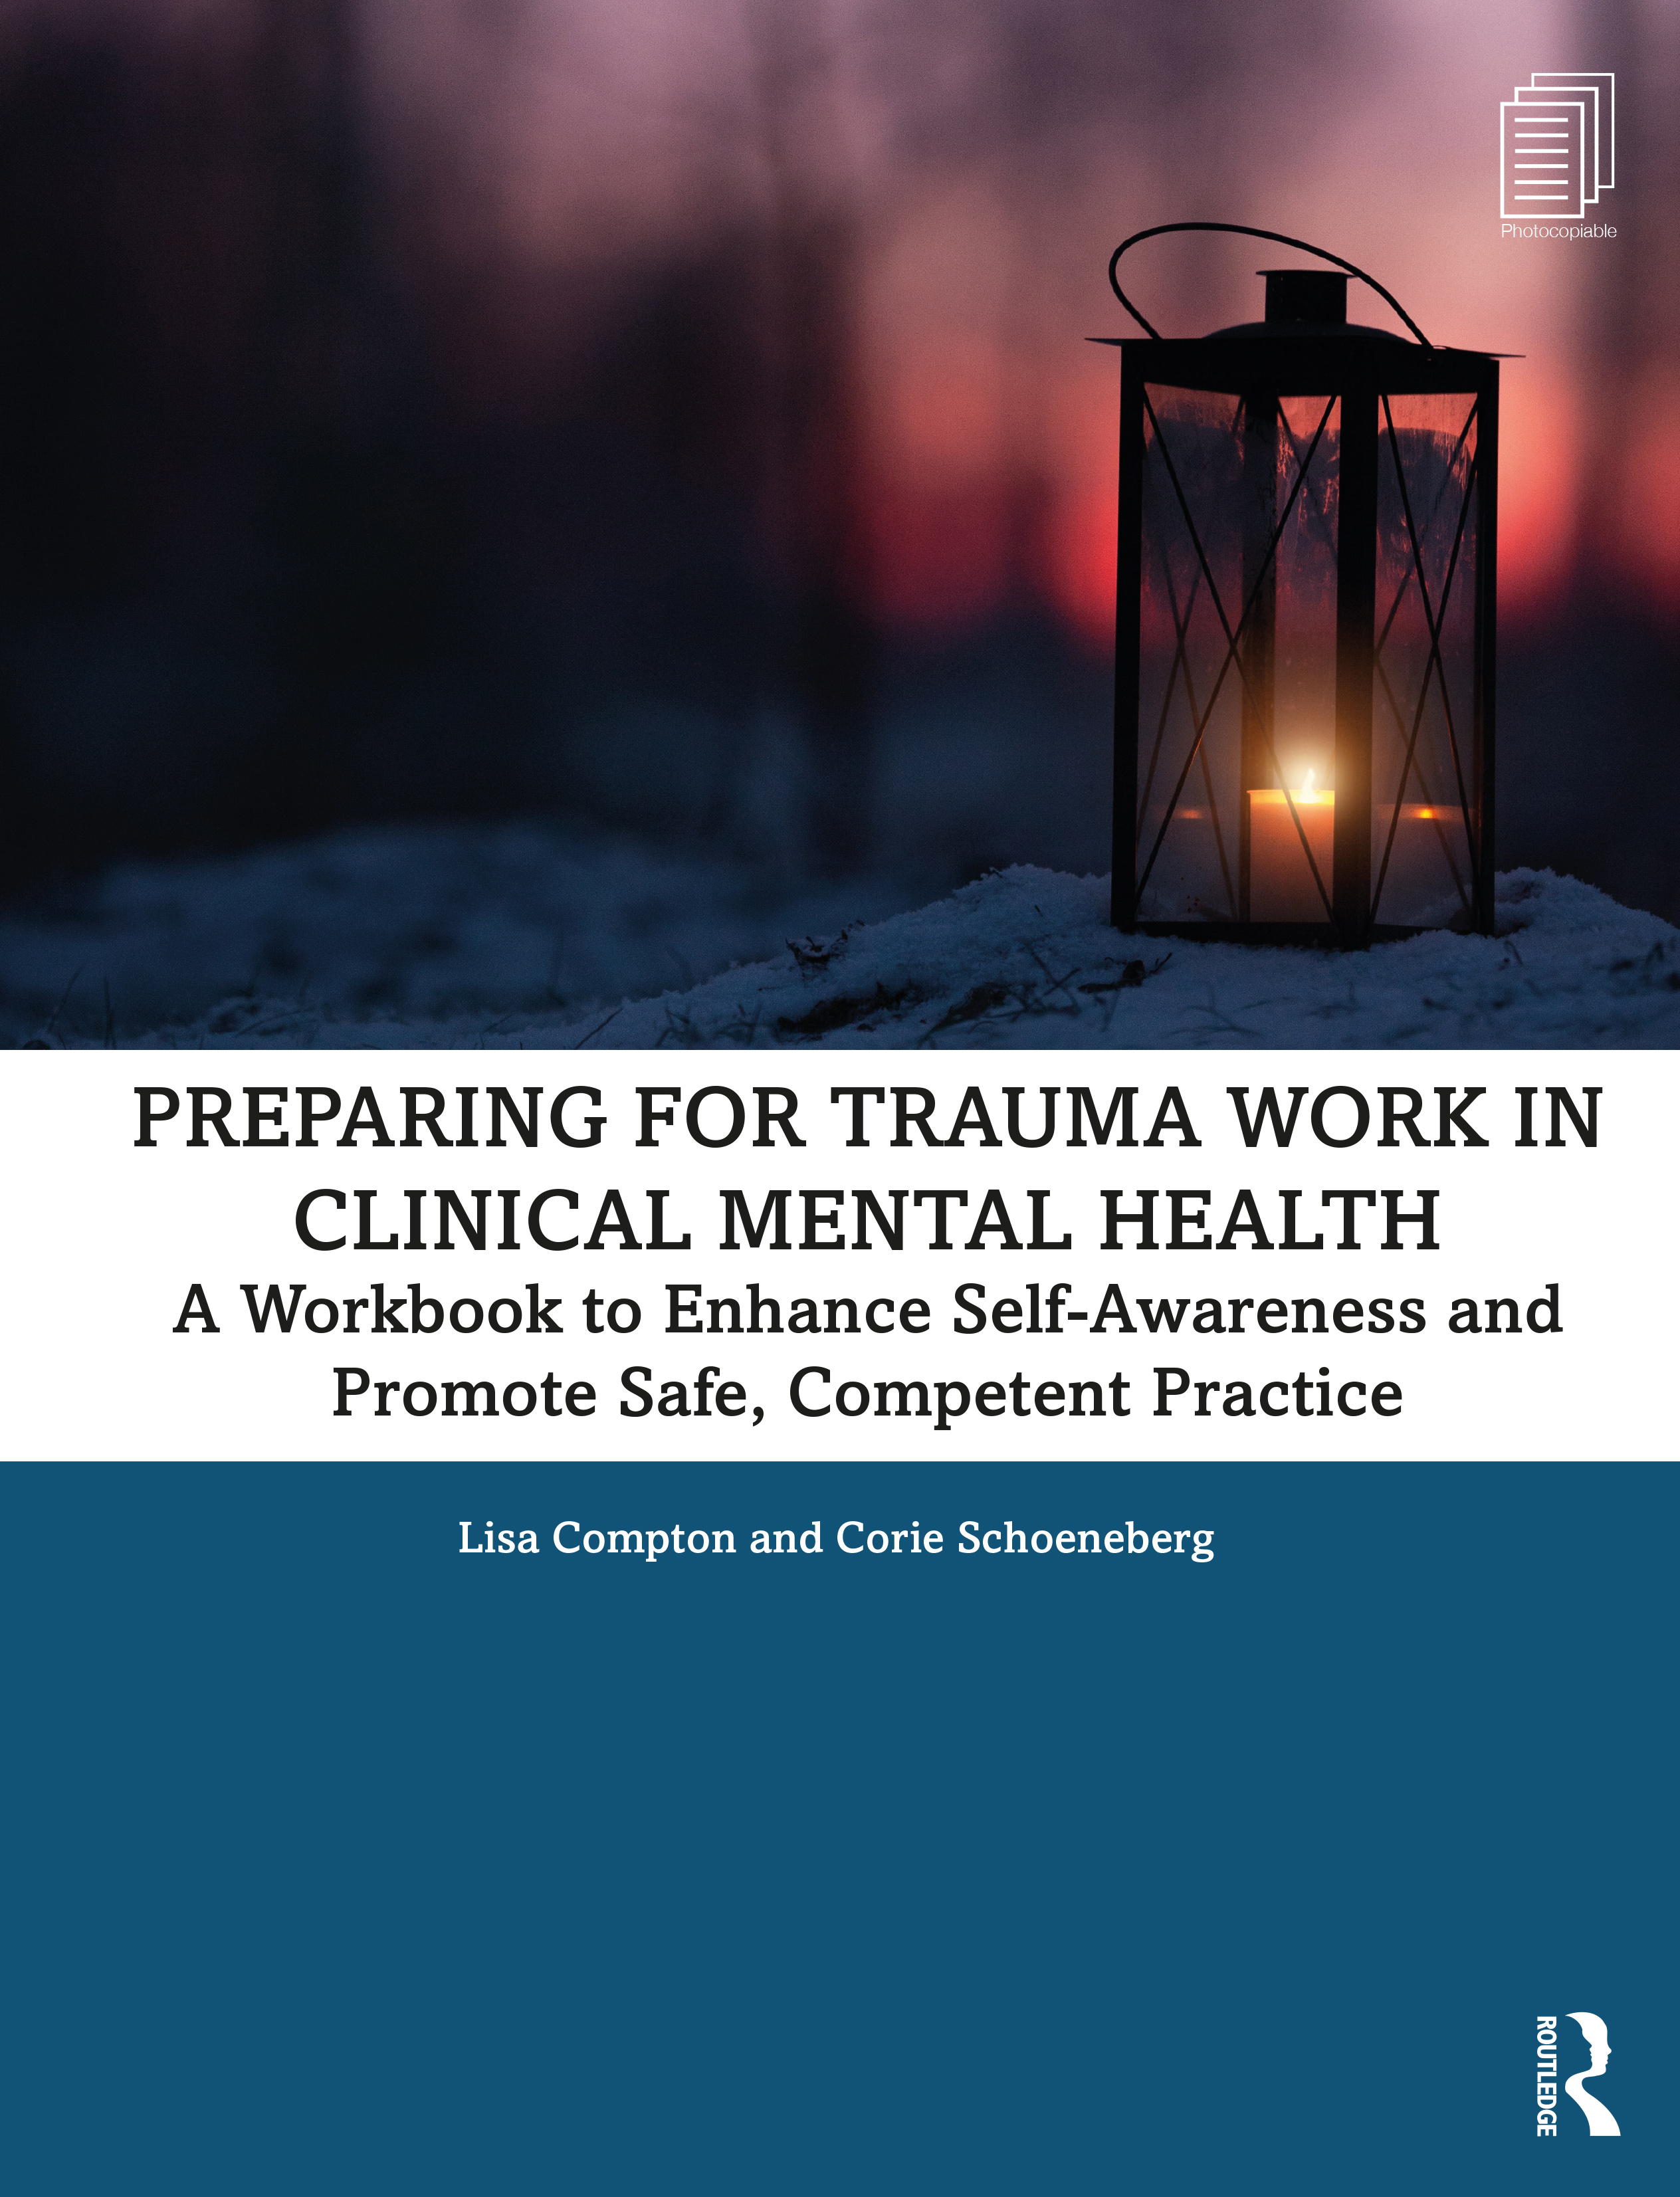 Preparing for Trauma Work in Clinical Mental Health